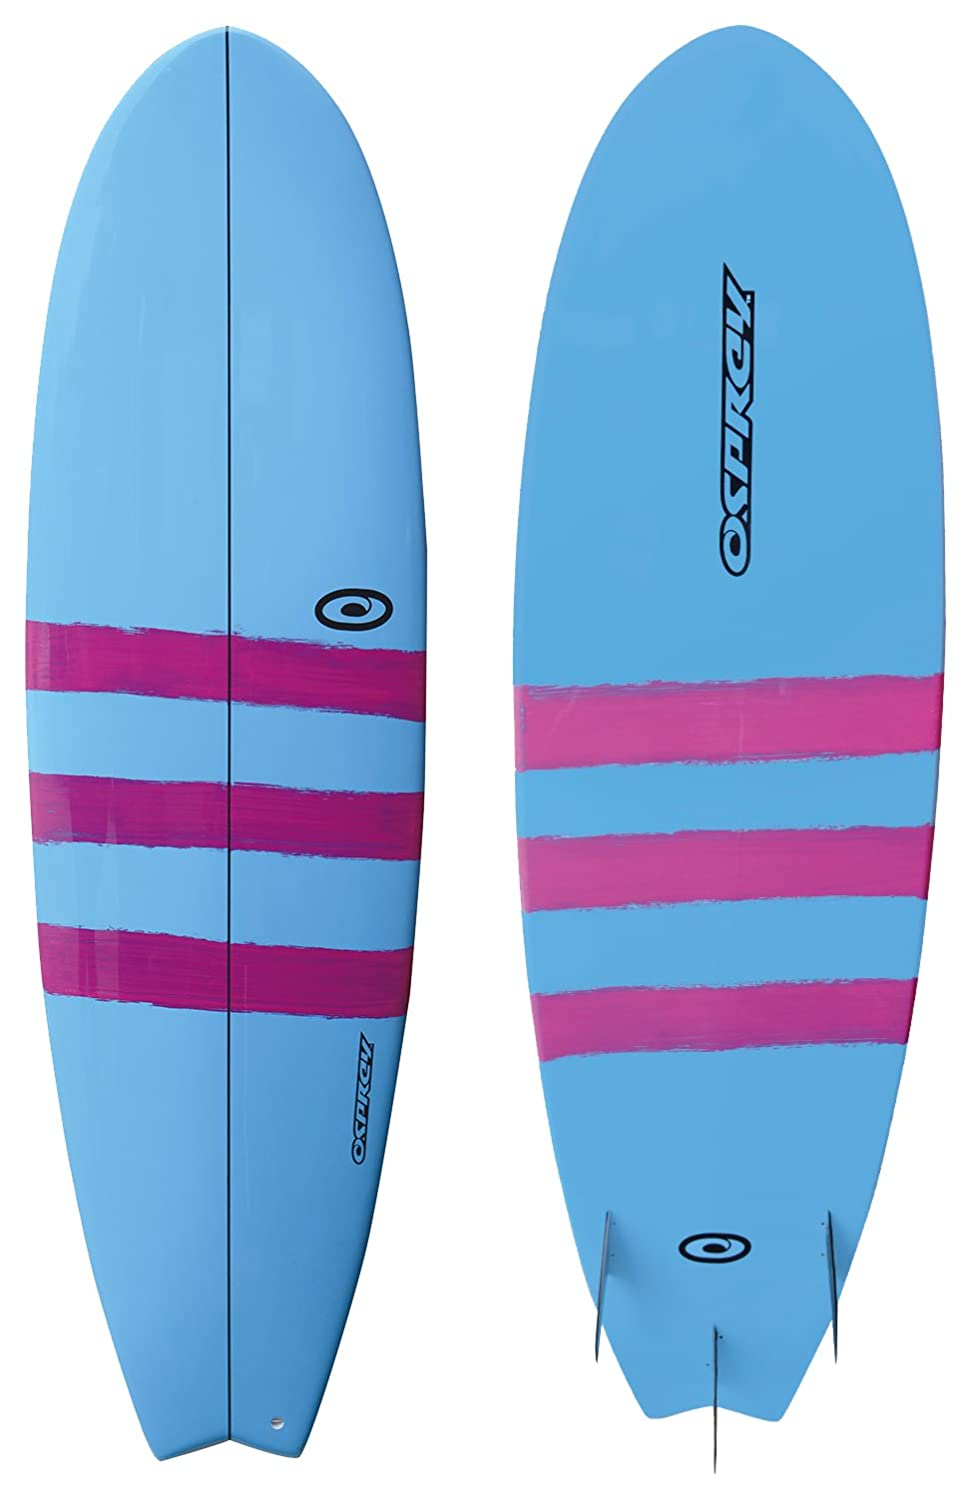 Osprey Unisex epoxi tribanda Peces Tabla de Surf, Color Azul, 6 ft: Amazon.es: Deportes y aire libre